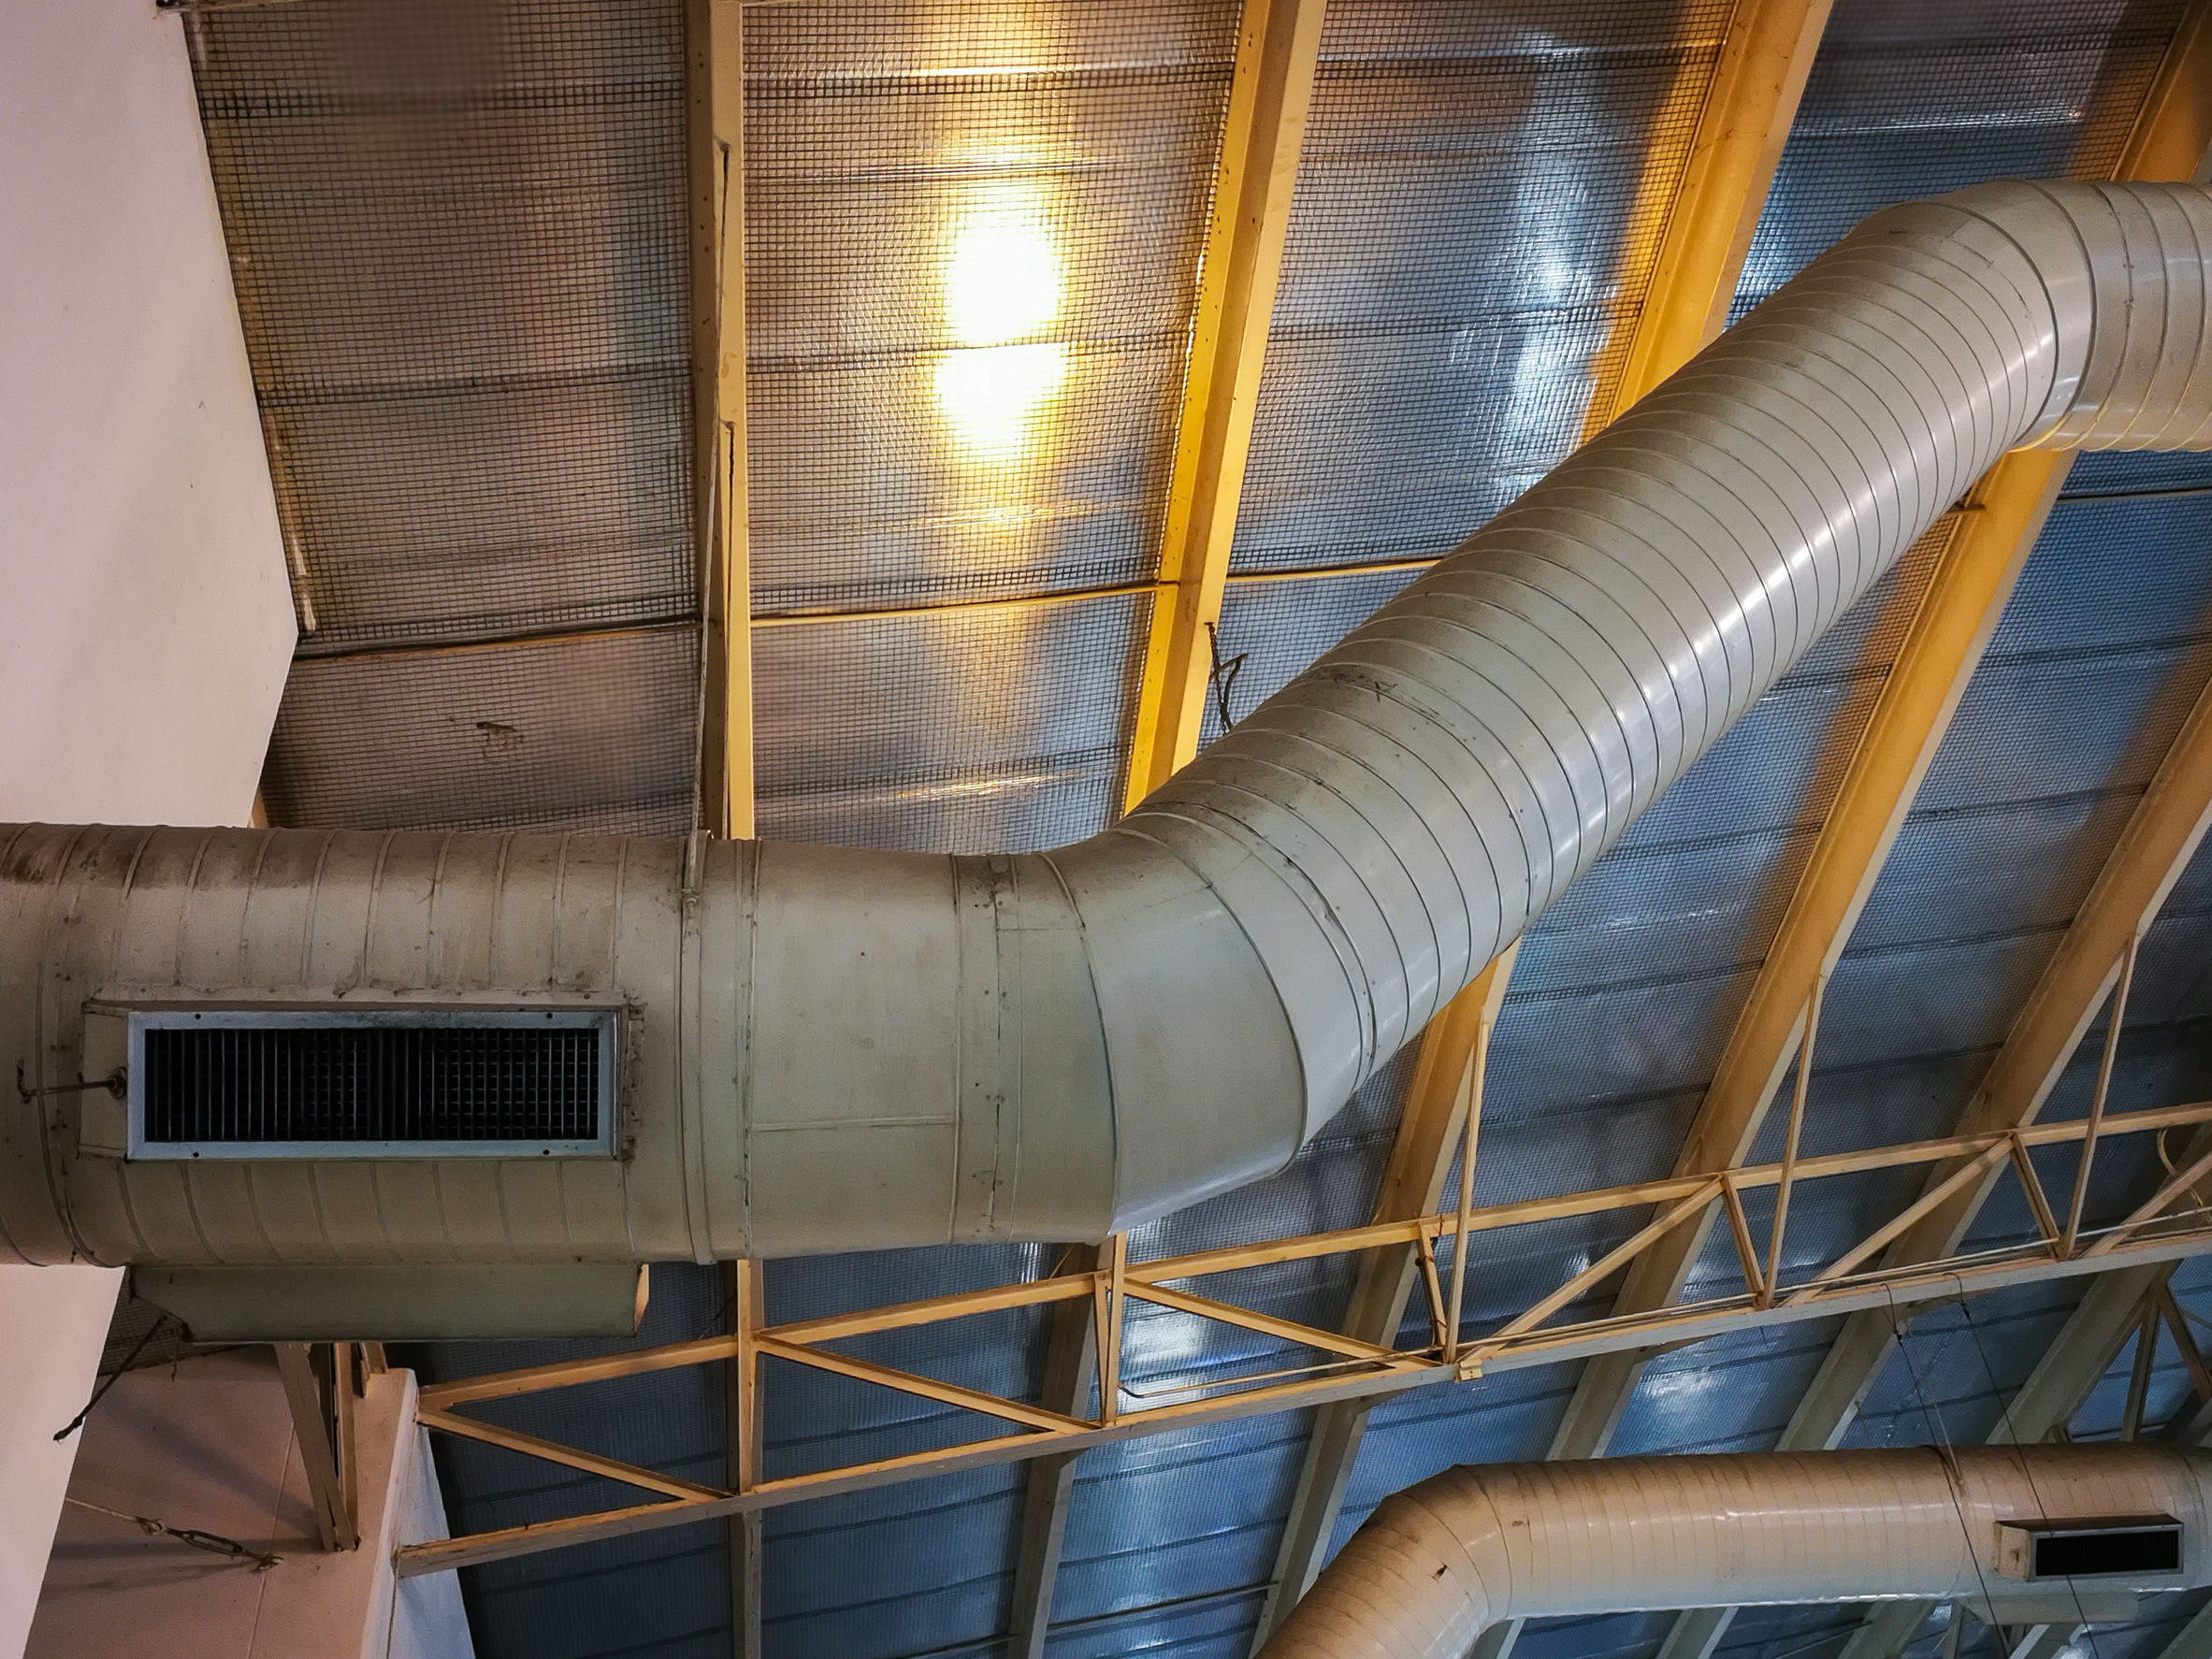 Commercial Air Ducts